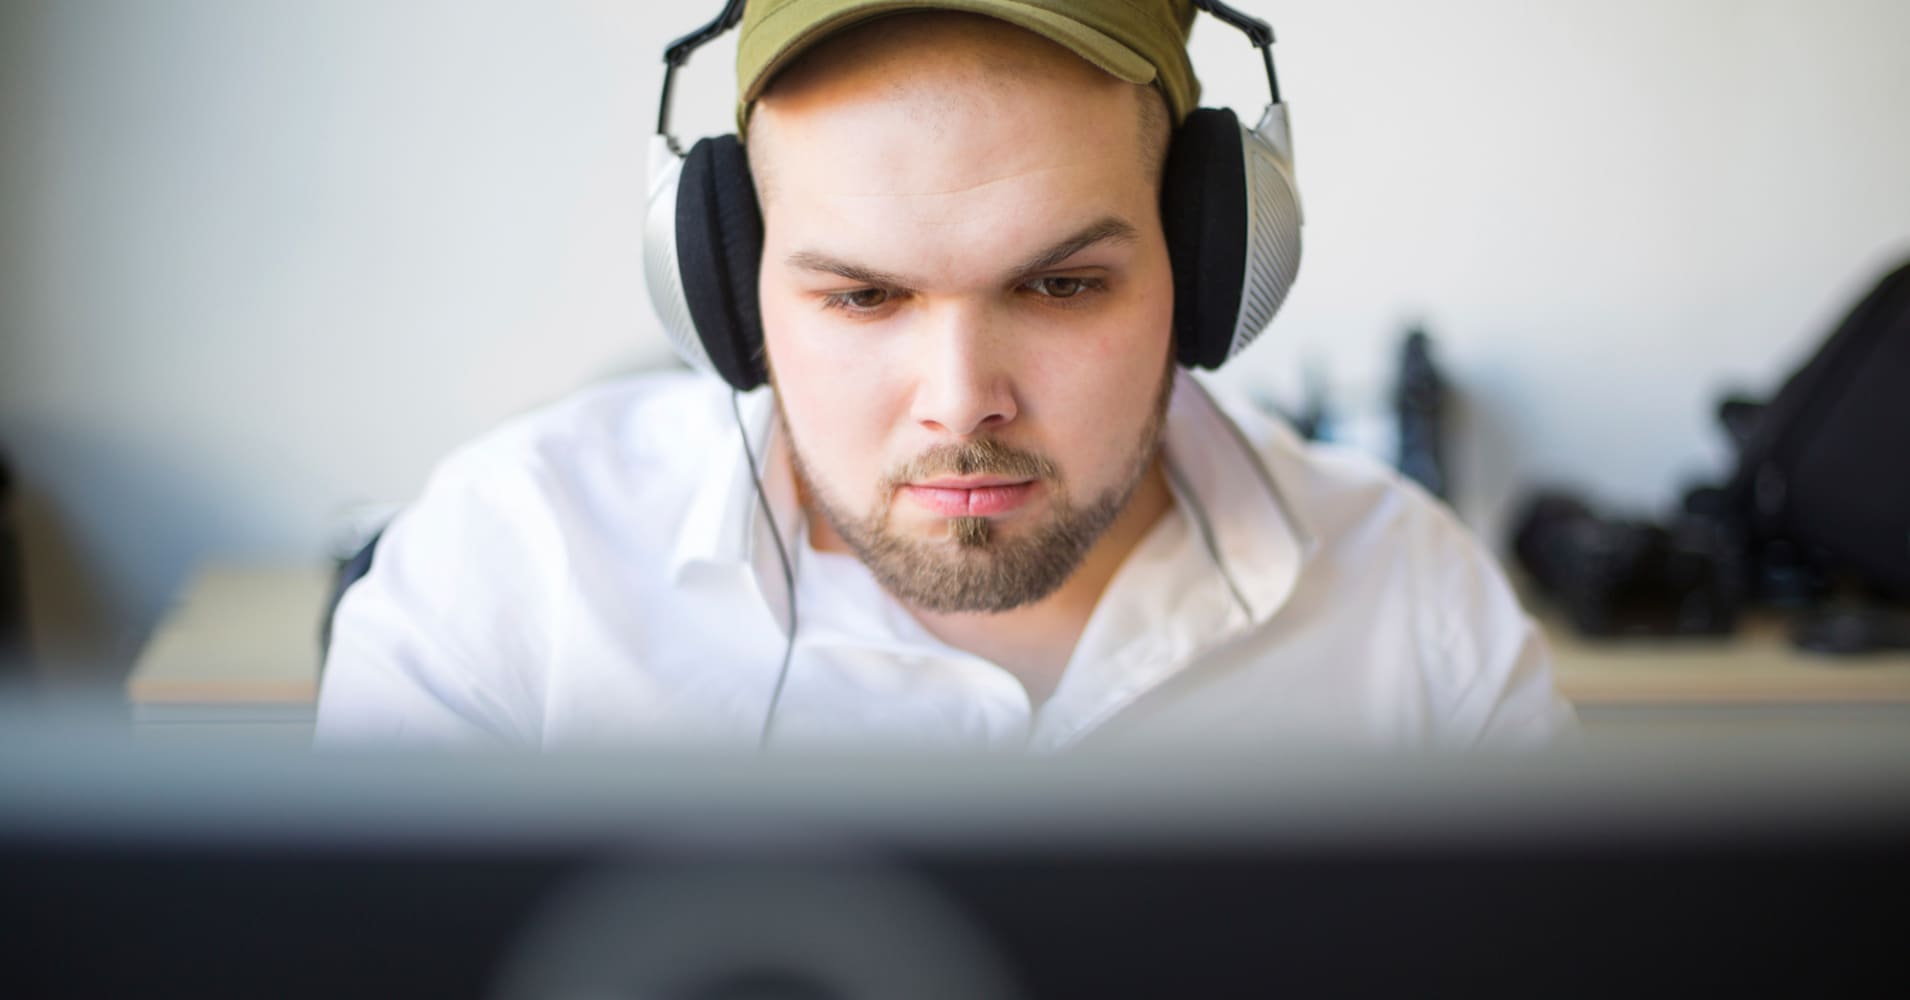 Why you shouldn't hate on the millennial that wears headphones at work